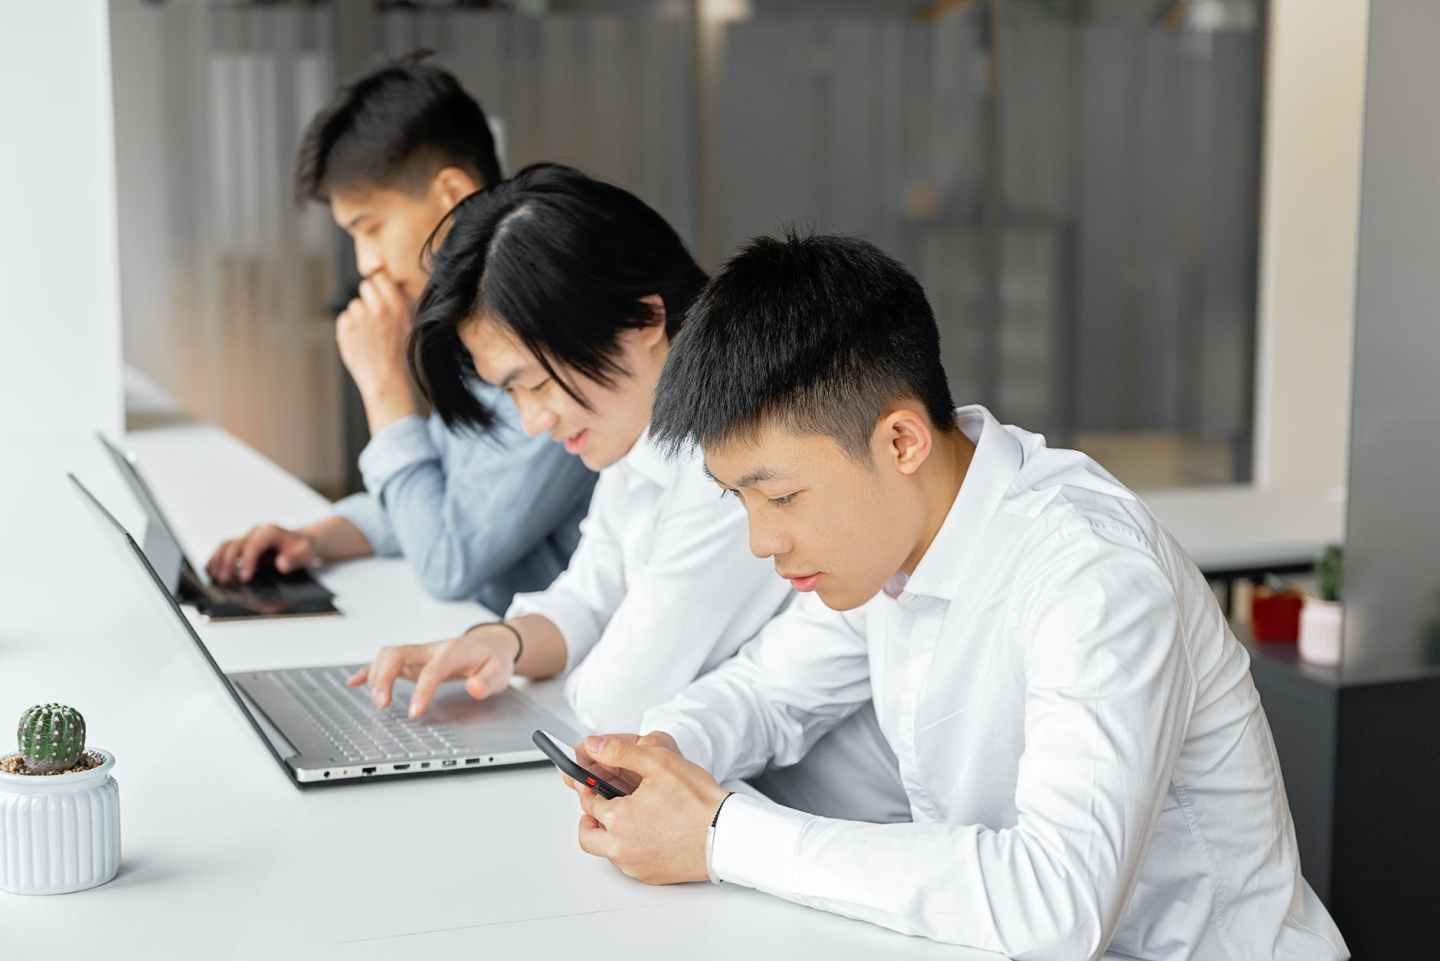 men working modern using electronic devices